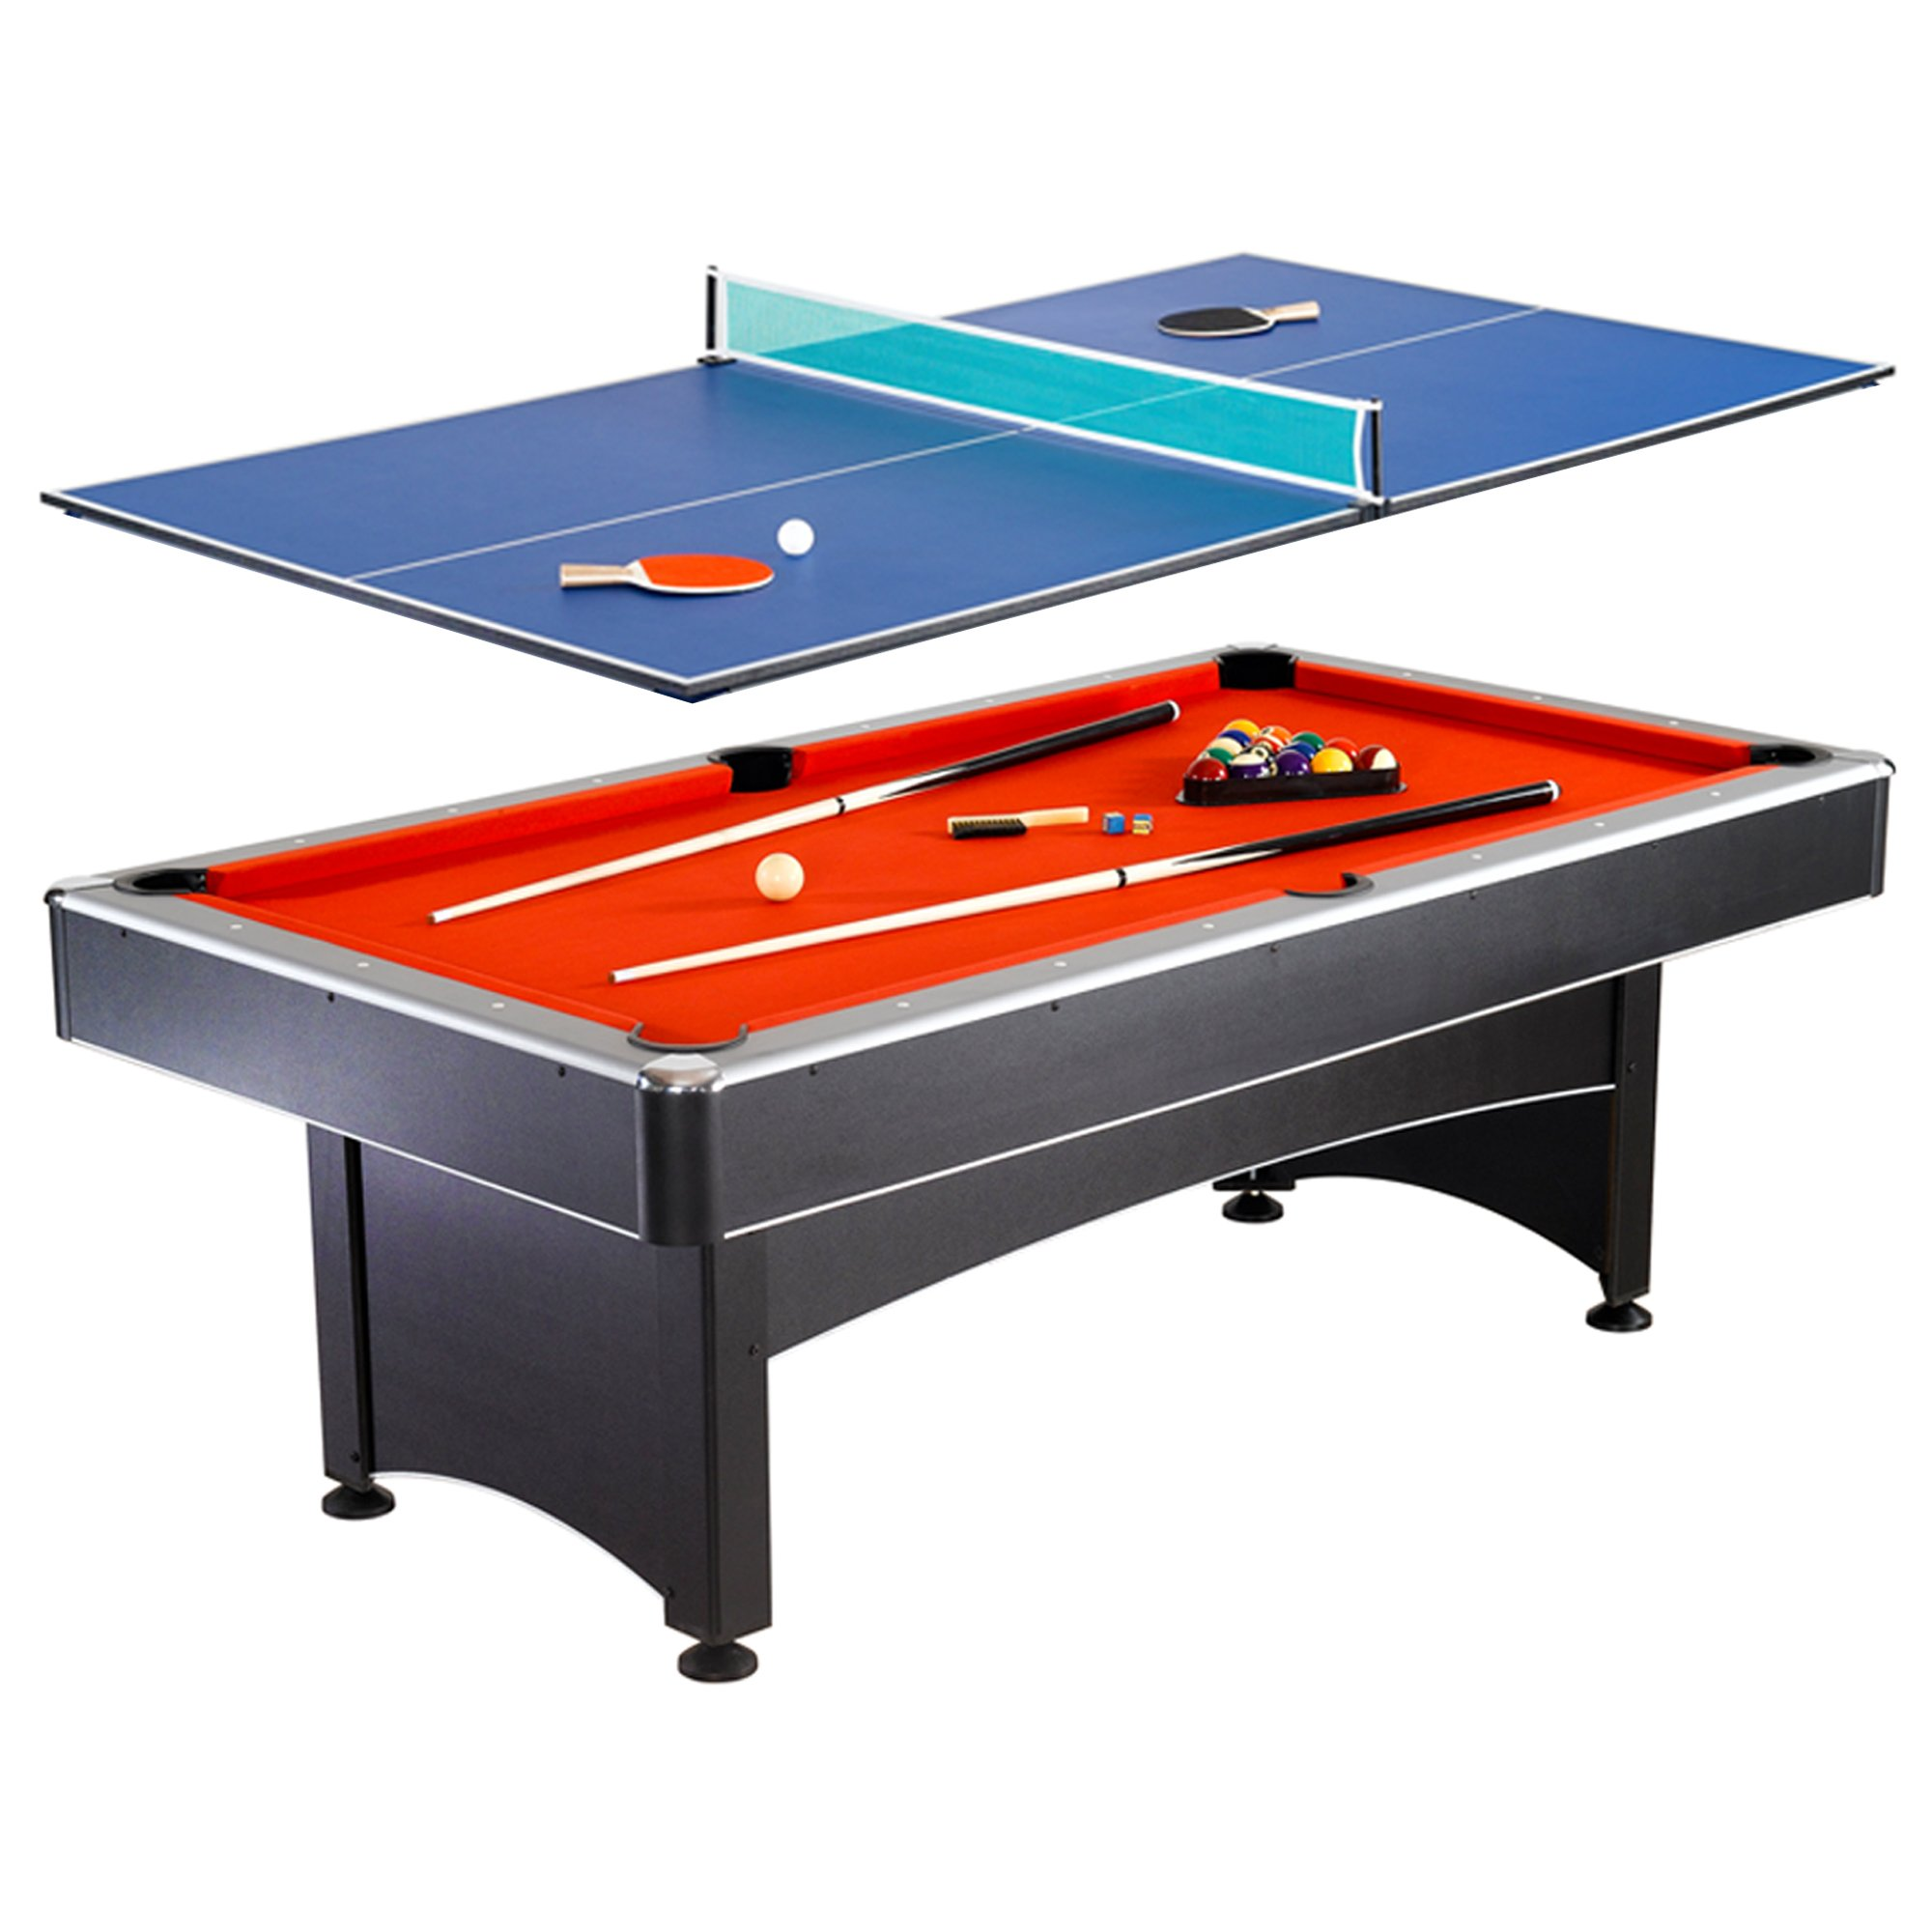 Carmelli NG1023 7' Pool Table with Table Tennis Featuring an Easy Assembly and Includes Cues Net Post 2 Paddles and Tennis by Carmelli